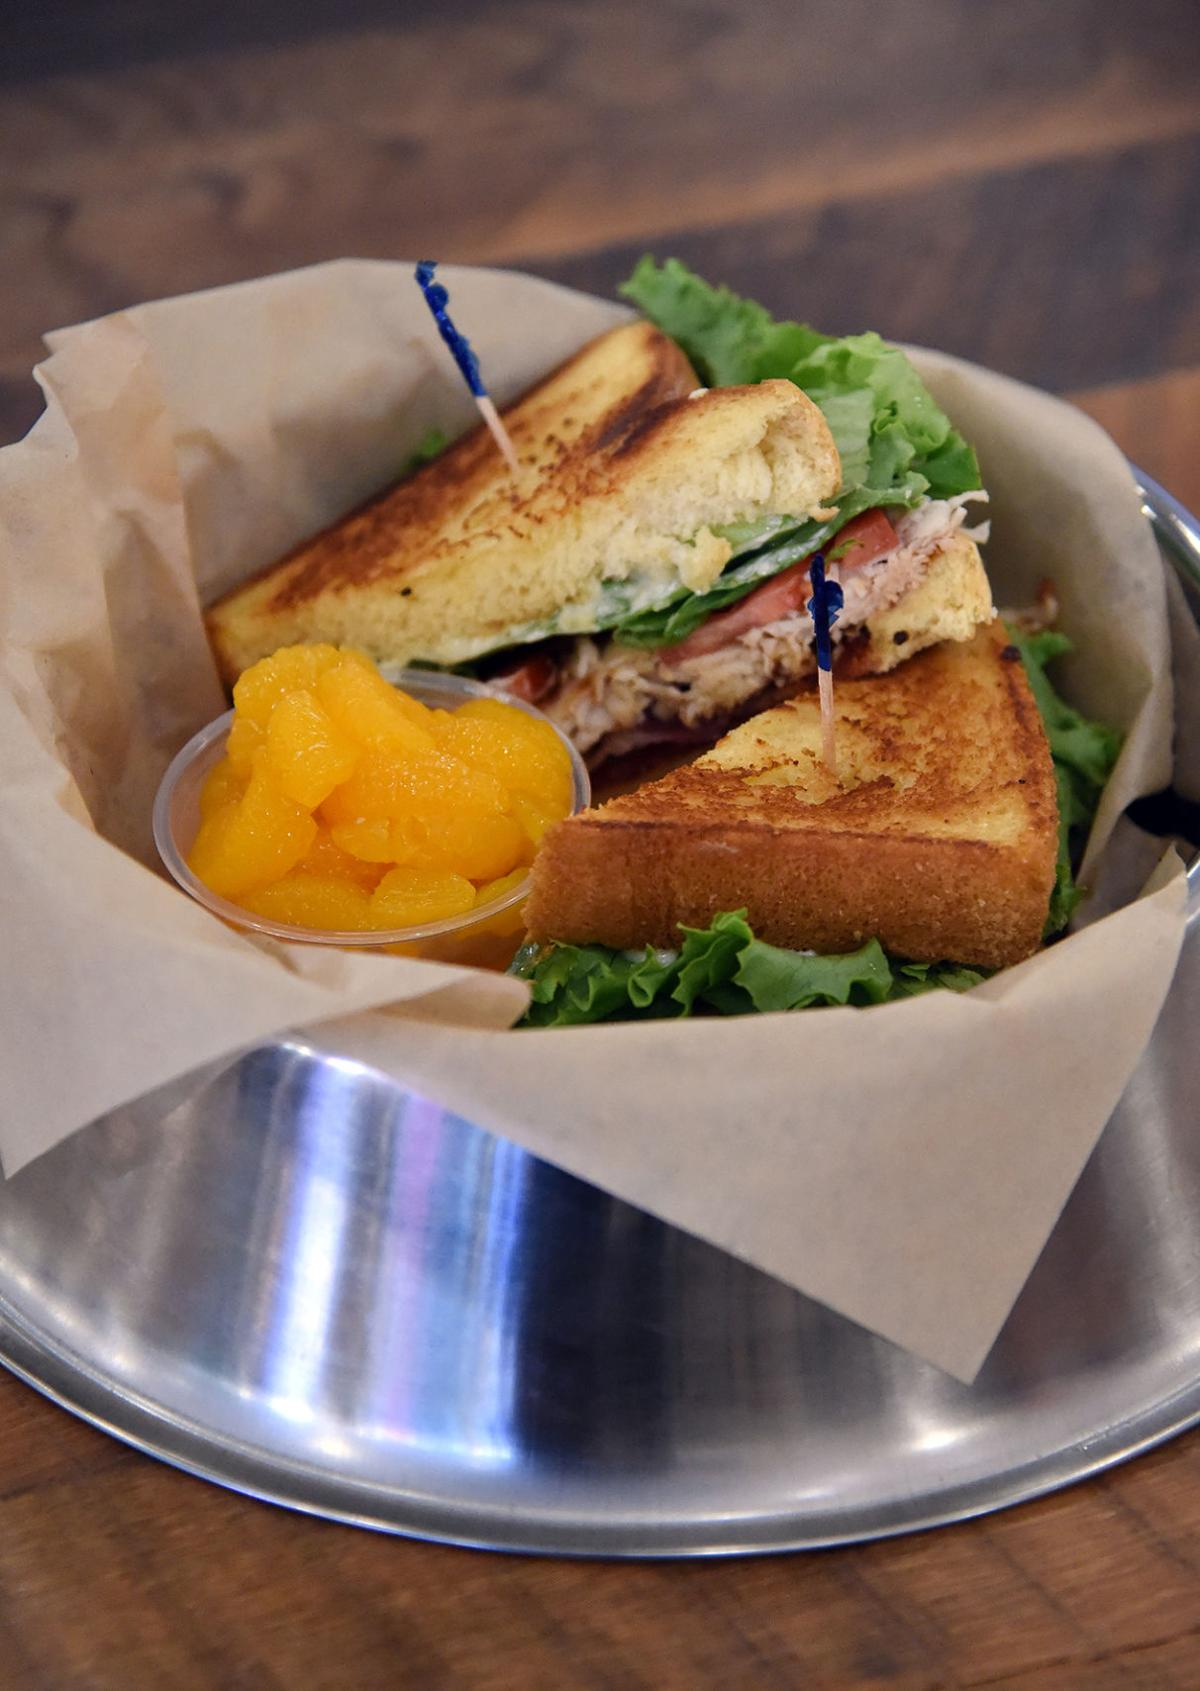 Dining Review: Dogs welcome at Pub Dog Colorado